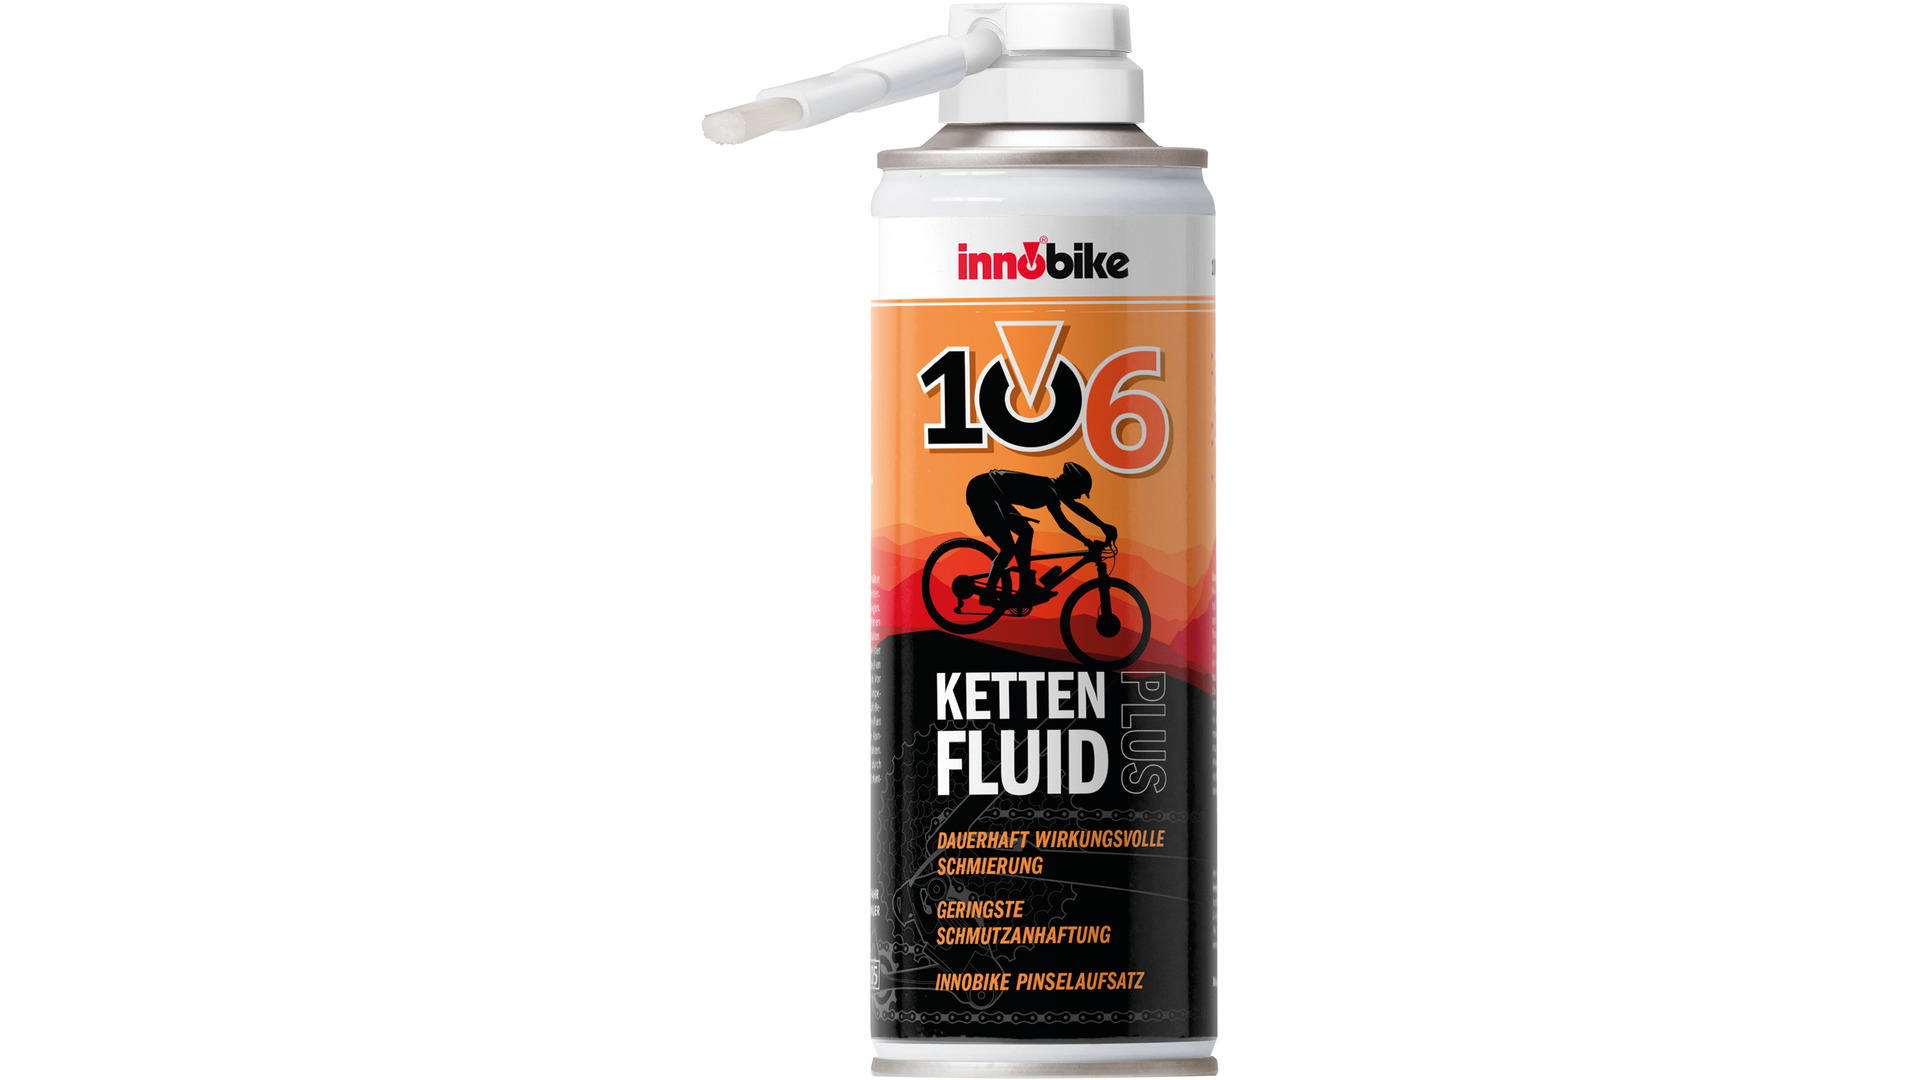 innobike 106 ketten fluid e bike kettenspray g nstig kaufen. Black Bedroom Furniture Sets. Home Design Ideas